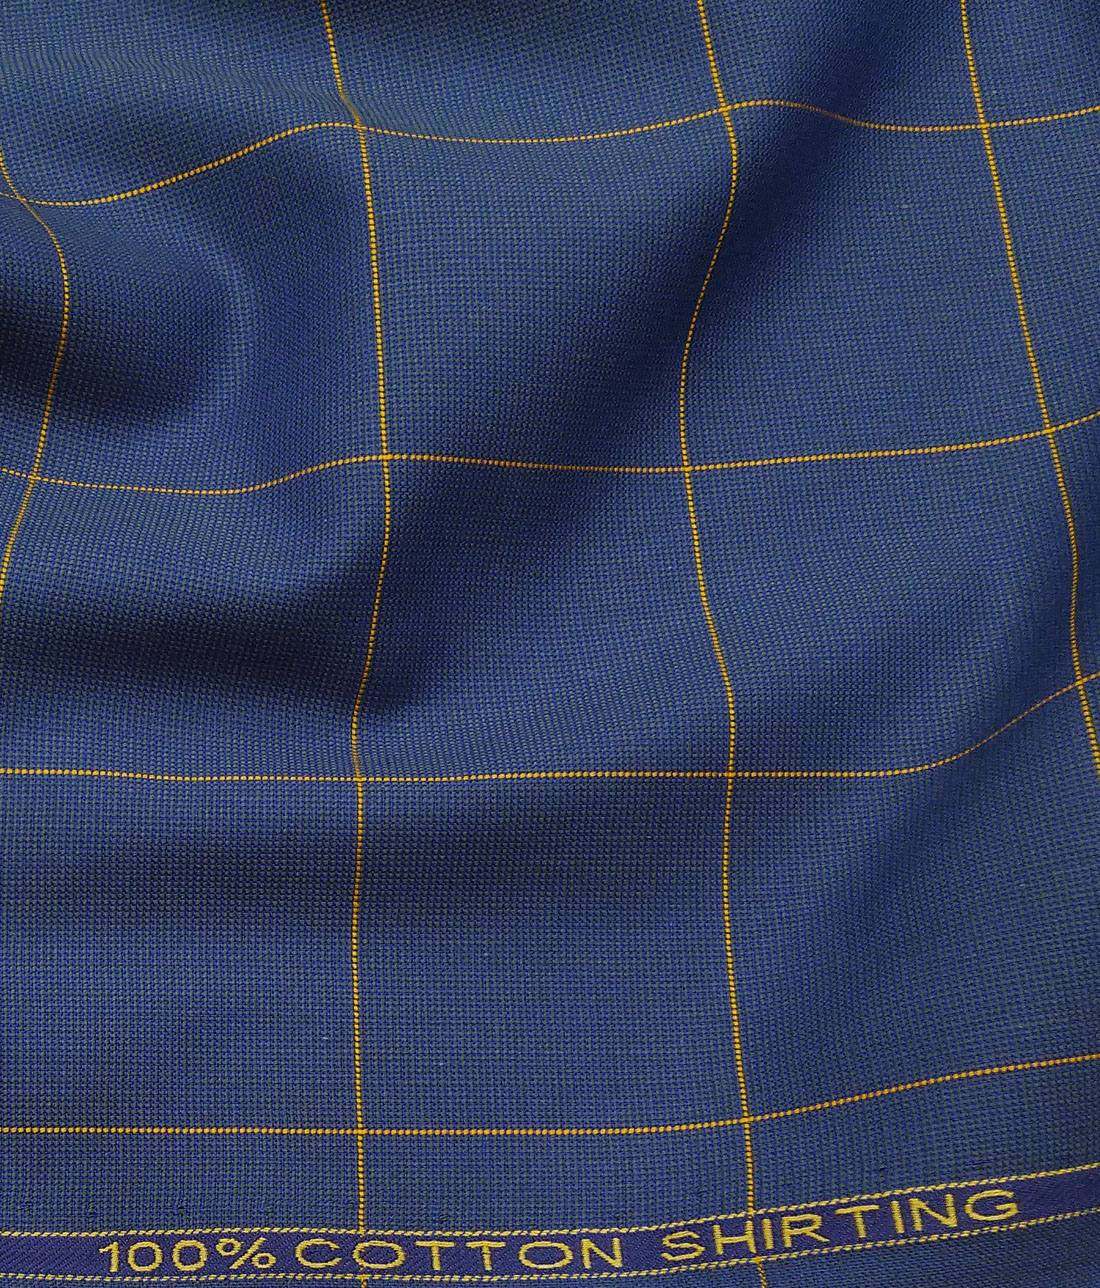 6ccc9c23 Birla Century Blue 100% Cotton Yellow Checks Shirt Fabric (1.60 M)